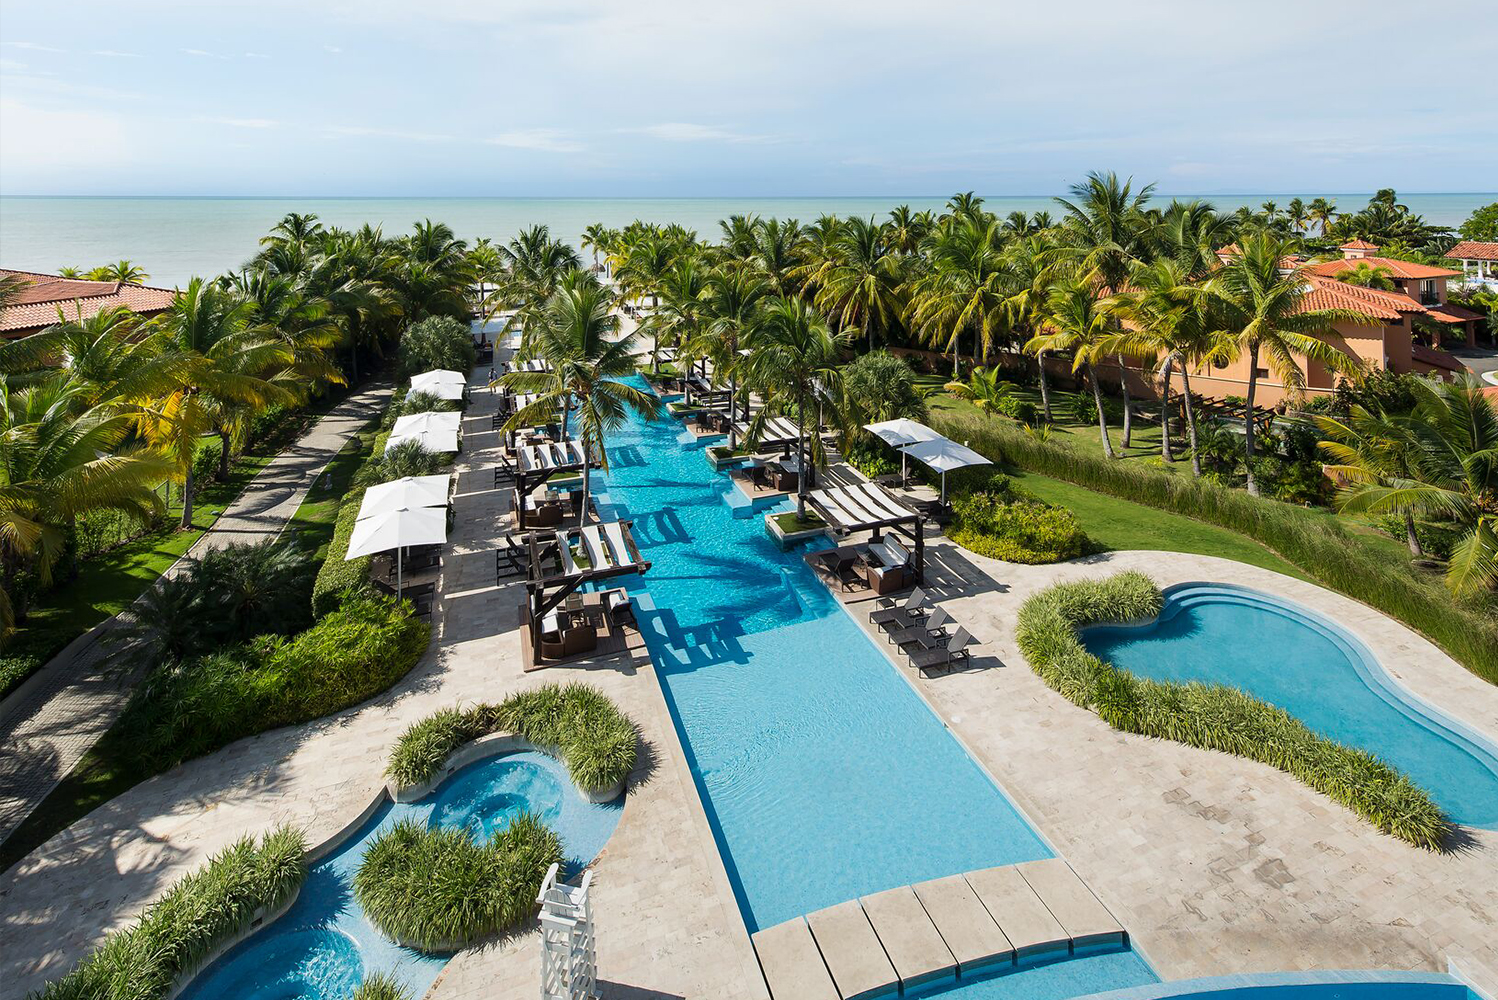 The Buenaventura Golf & Beach Resort joined Marriott International's Autograph Collection Hotels following a renovation.